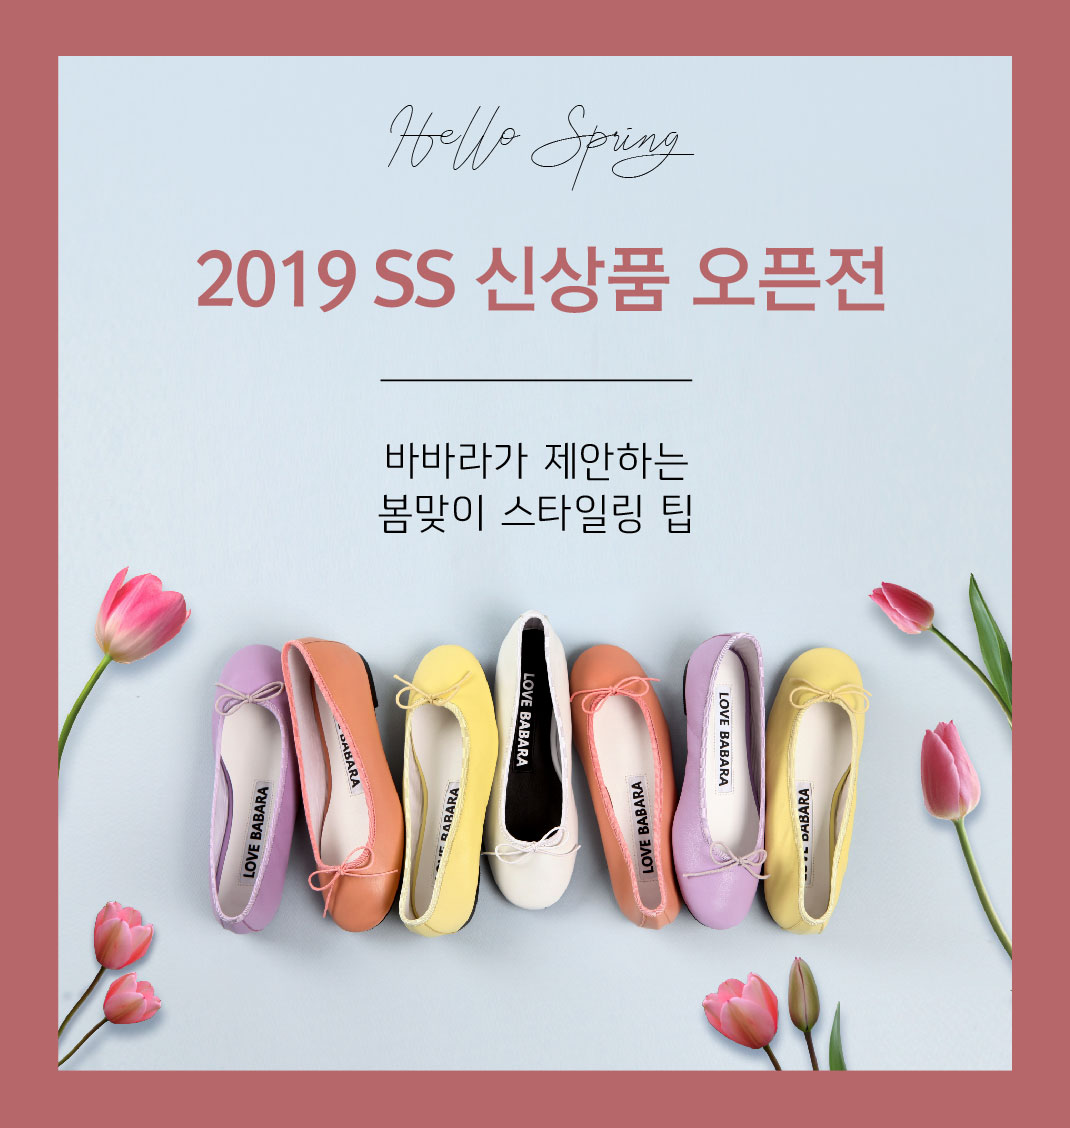 2019 SS 신상 COLLECTION!!